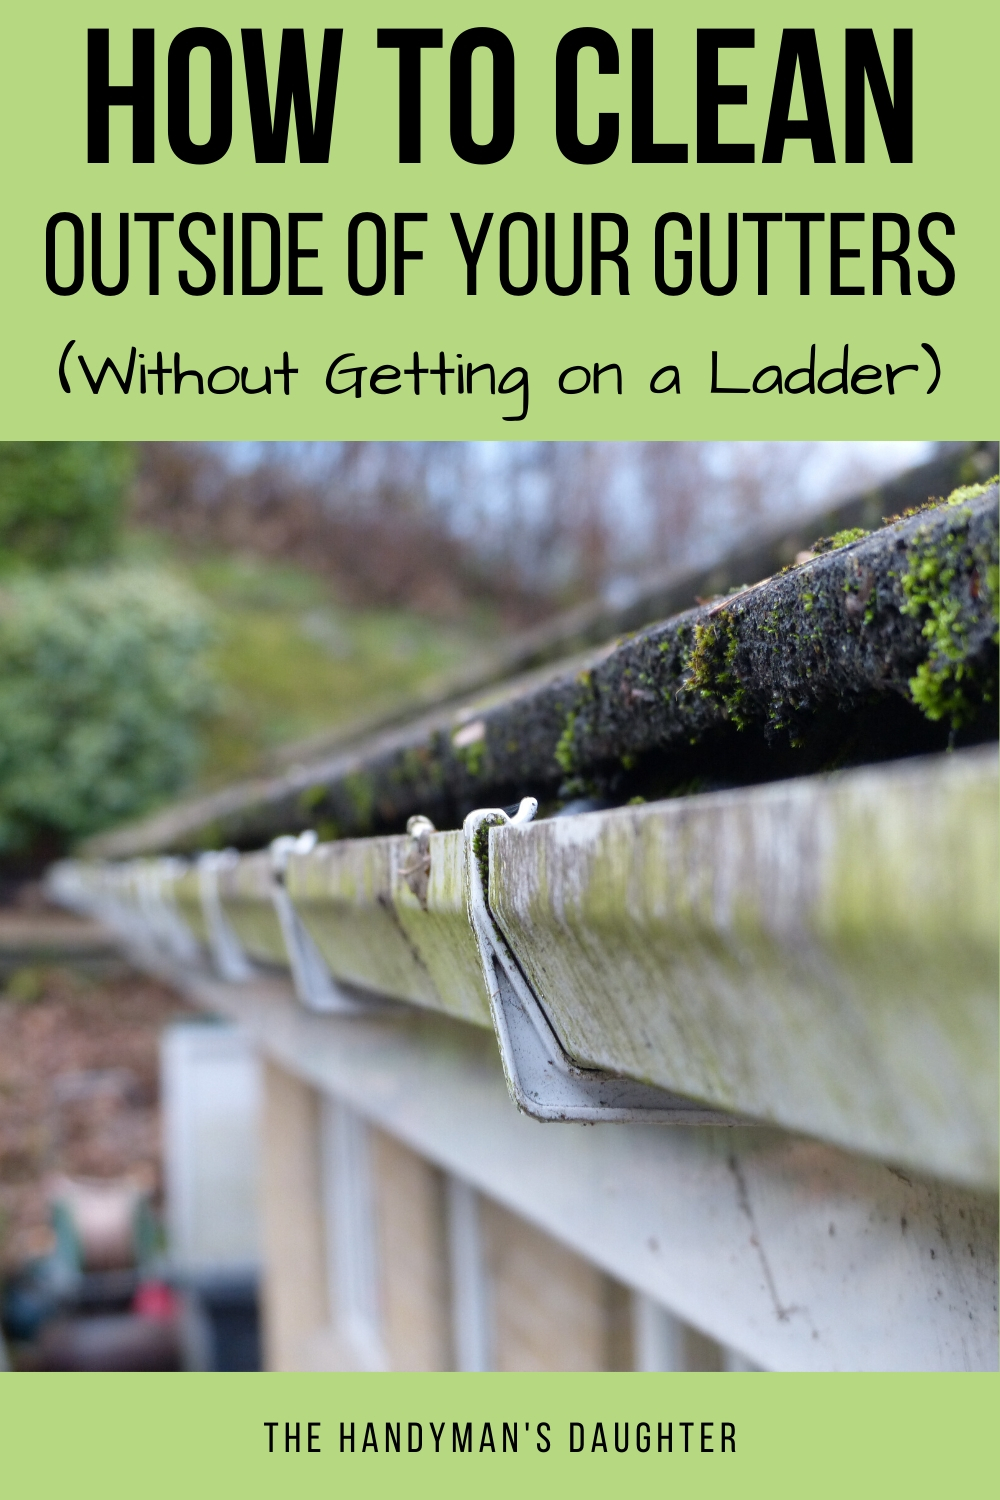 How To Clean The Outside Of Gutters Without A Ladder In 2020 Gutters Cleaning Gutters Gutter Cleaner